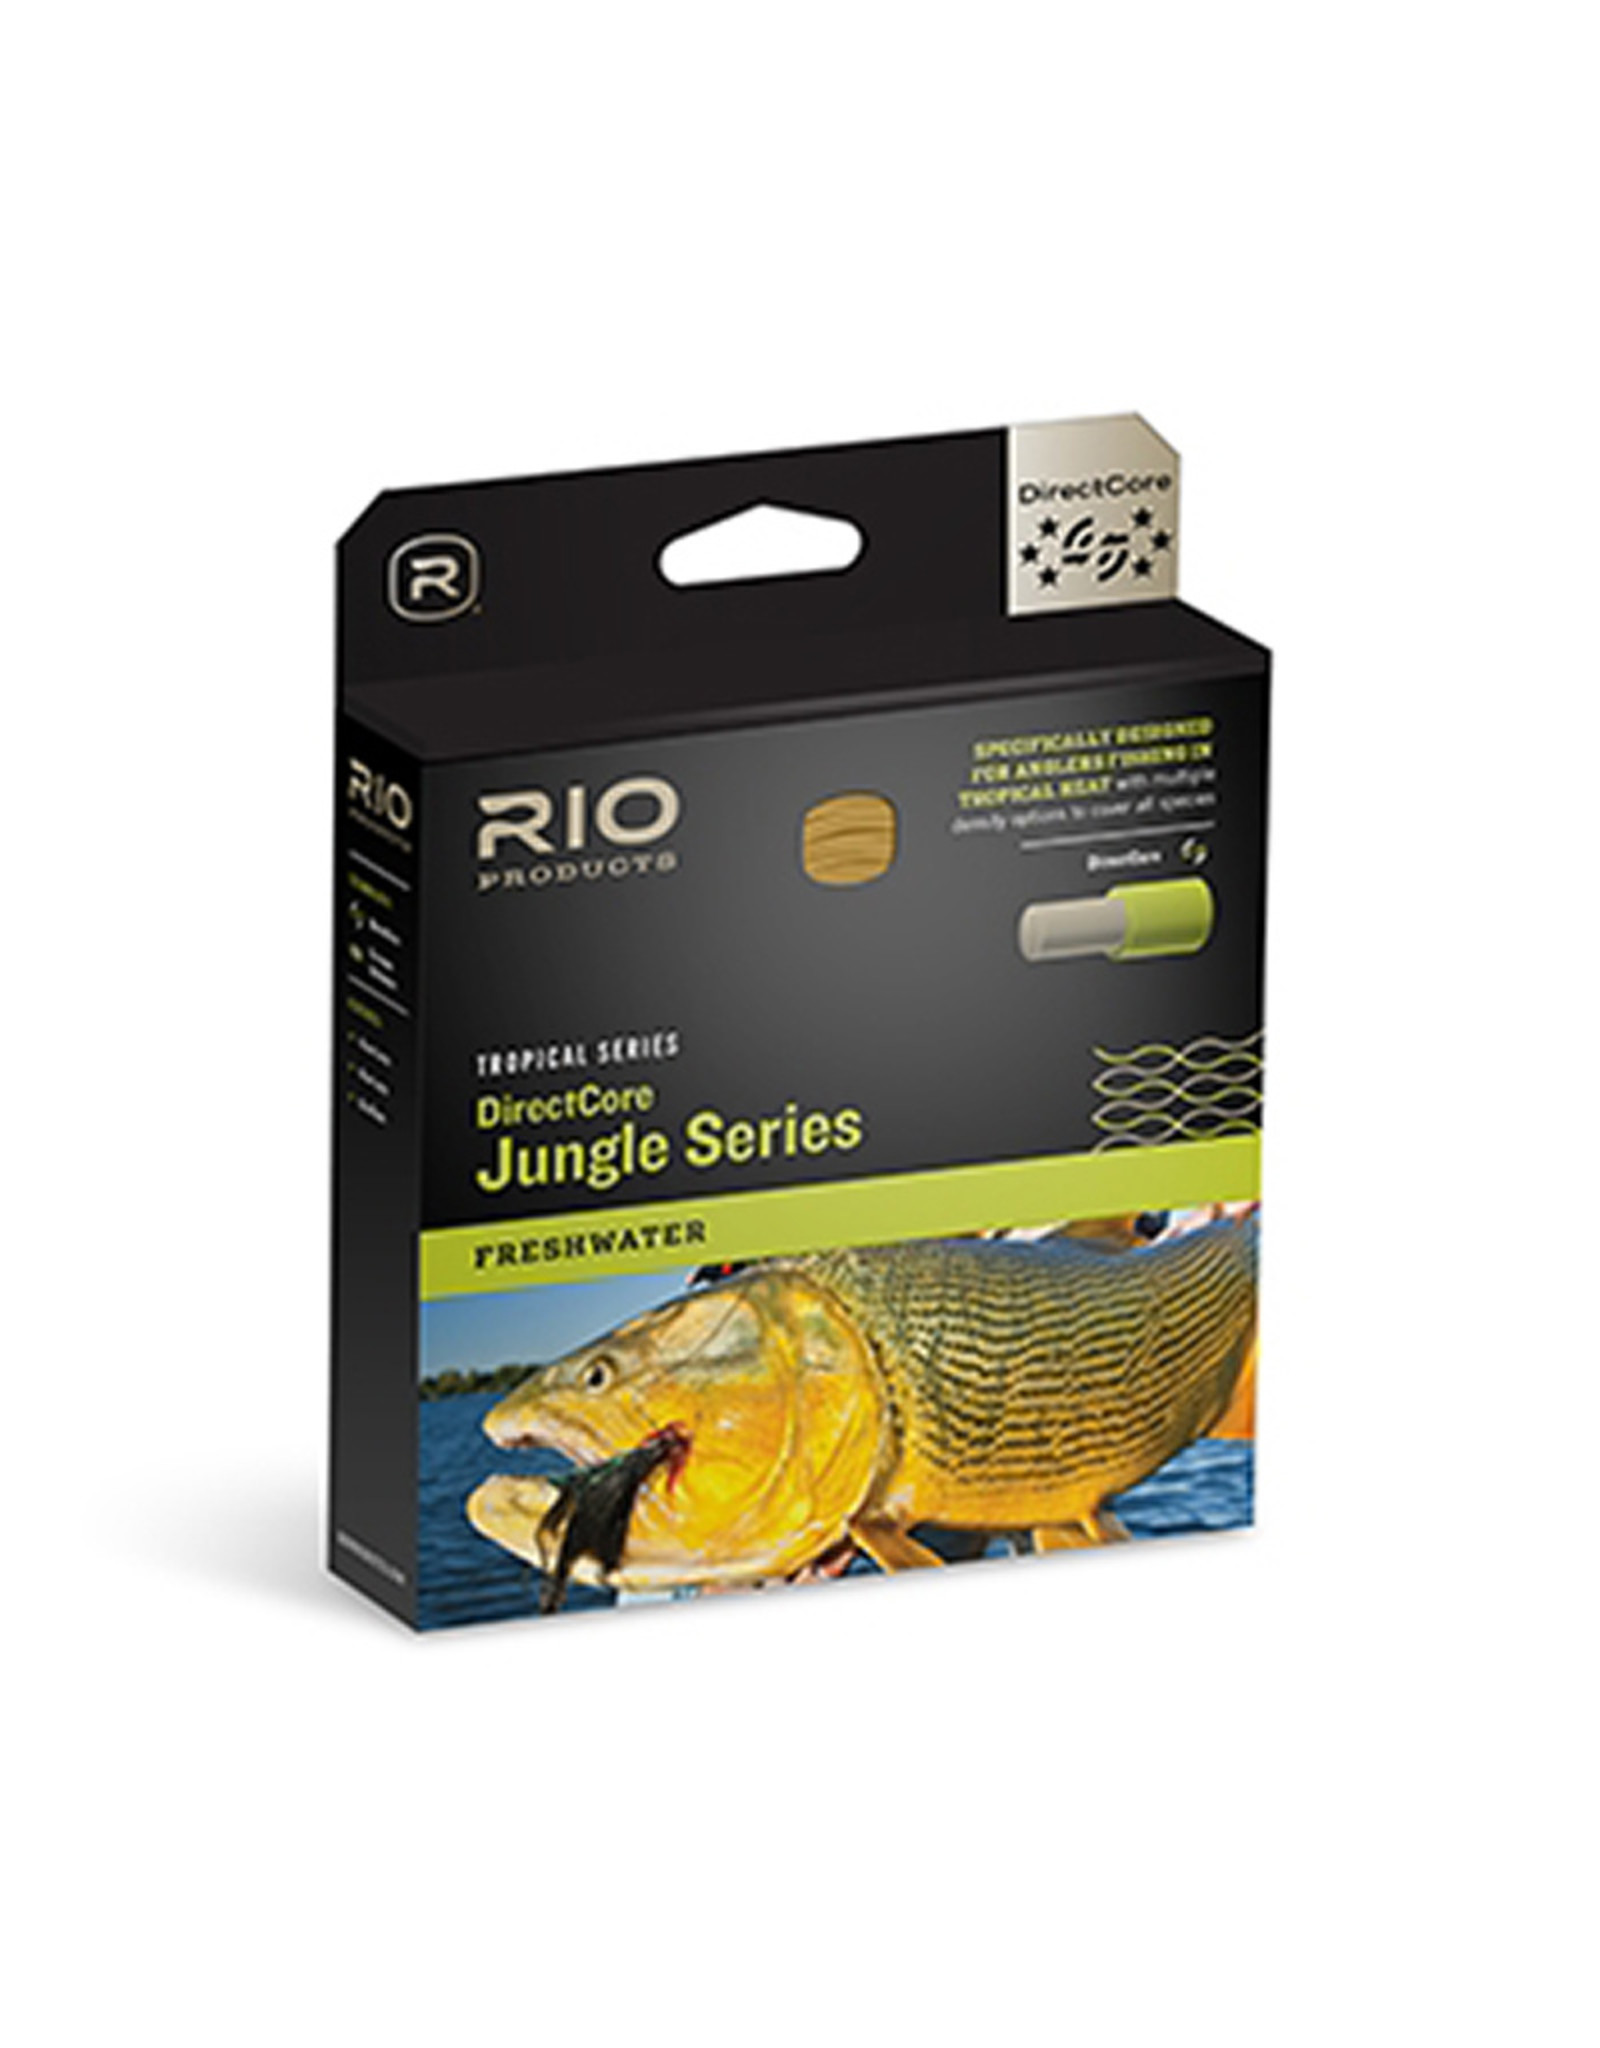 RIO Products DirectCore Jungle Series F/S6